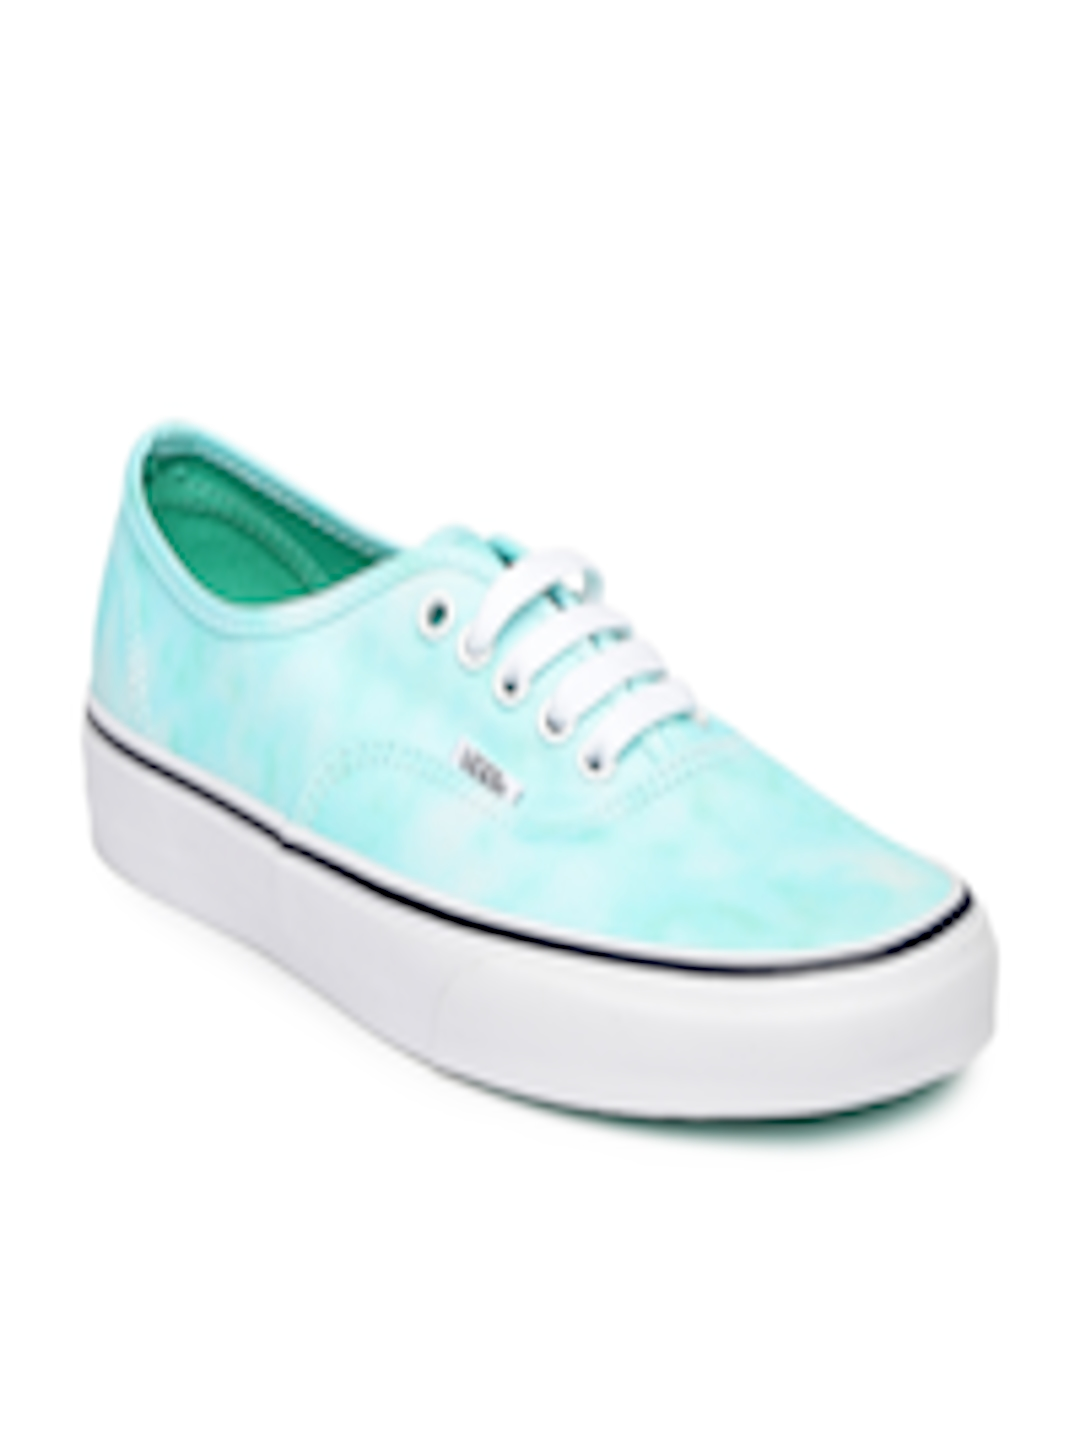 aee864ac95 Buy Vans Unisex Mint Green Tie Dye Print Casual Shoes - Casual Shoes for  Unisex 1207779